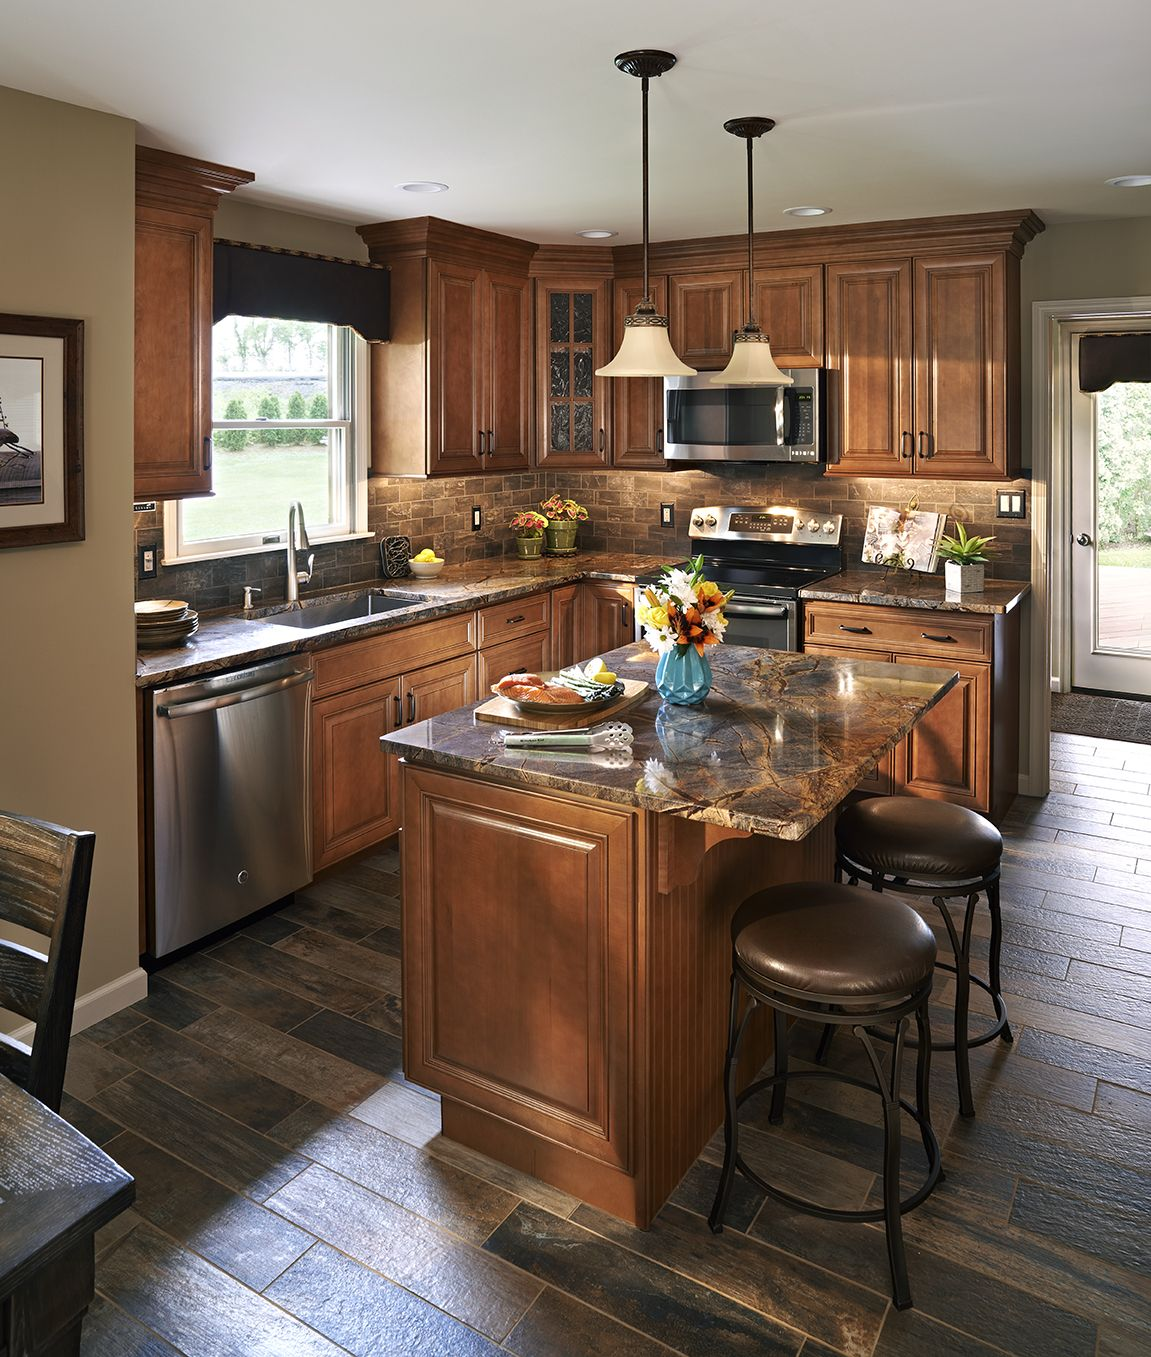 Discontinued Kitchen Cabinets: Traditional Kitchen Cabinets And An Inviting Kitchen